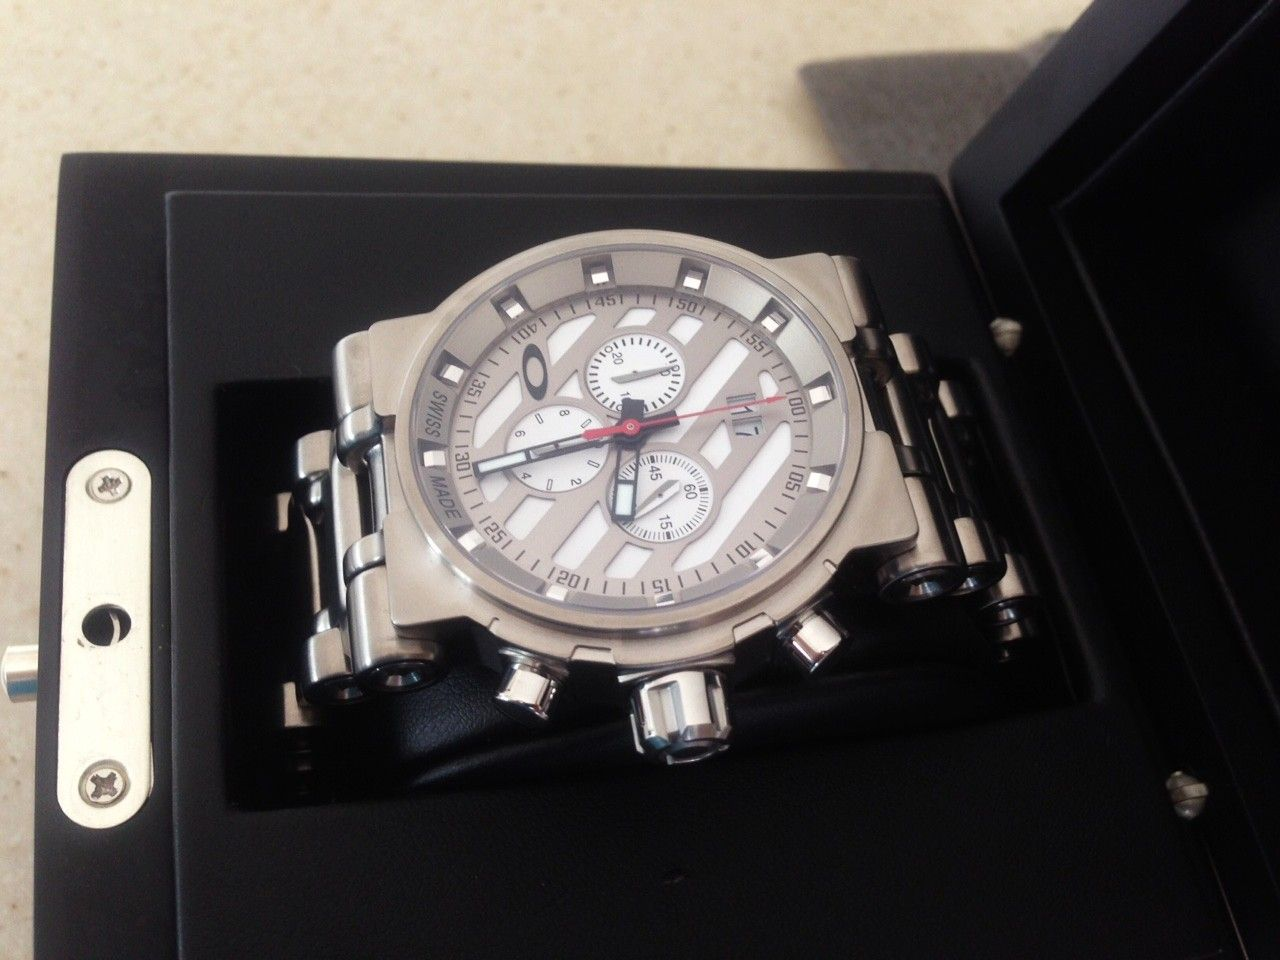 NEW IN BOX Oakley Hollow Point Titanium Watch White Dial 10-046 - 9.JPG